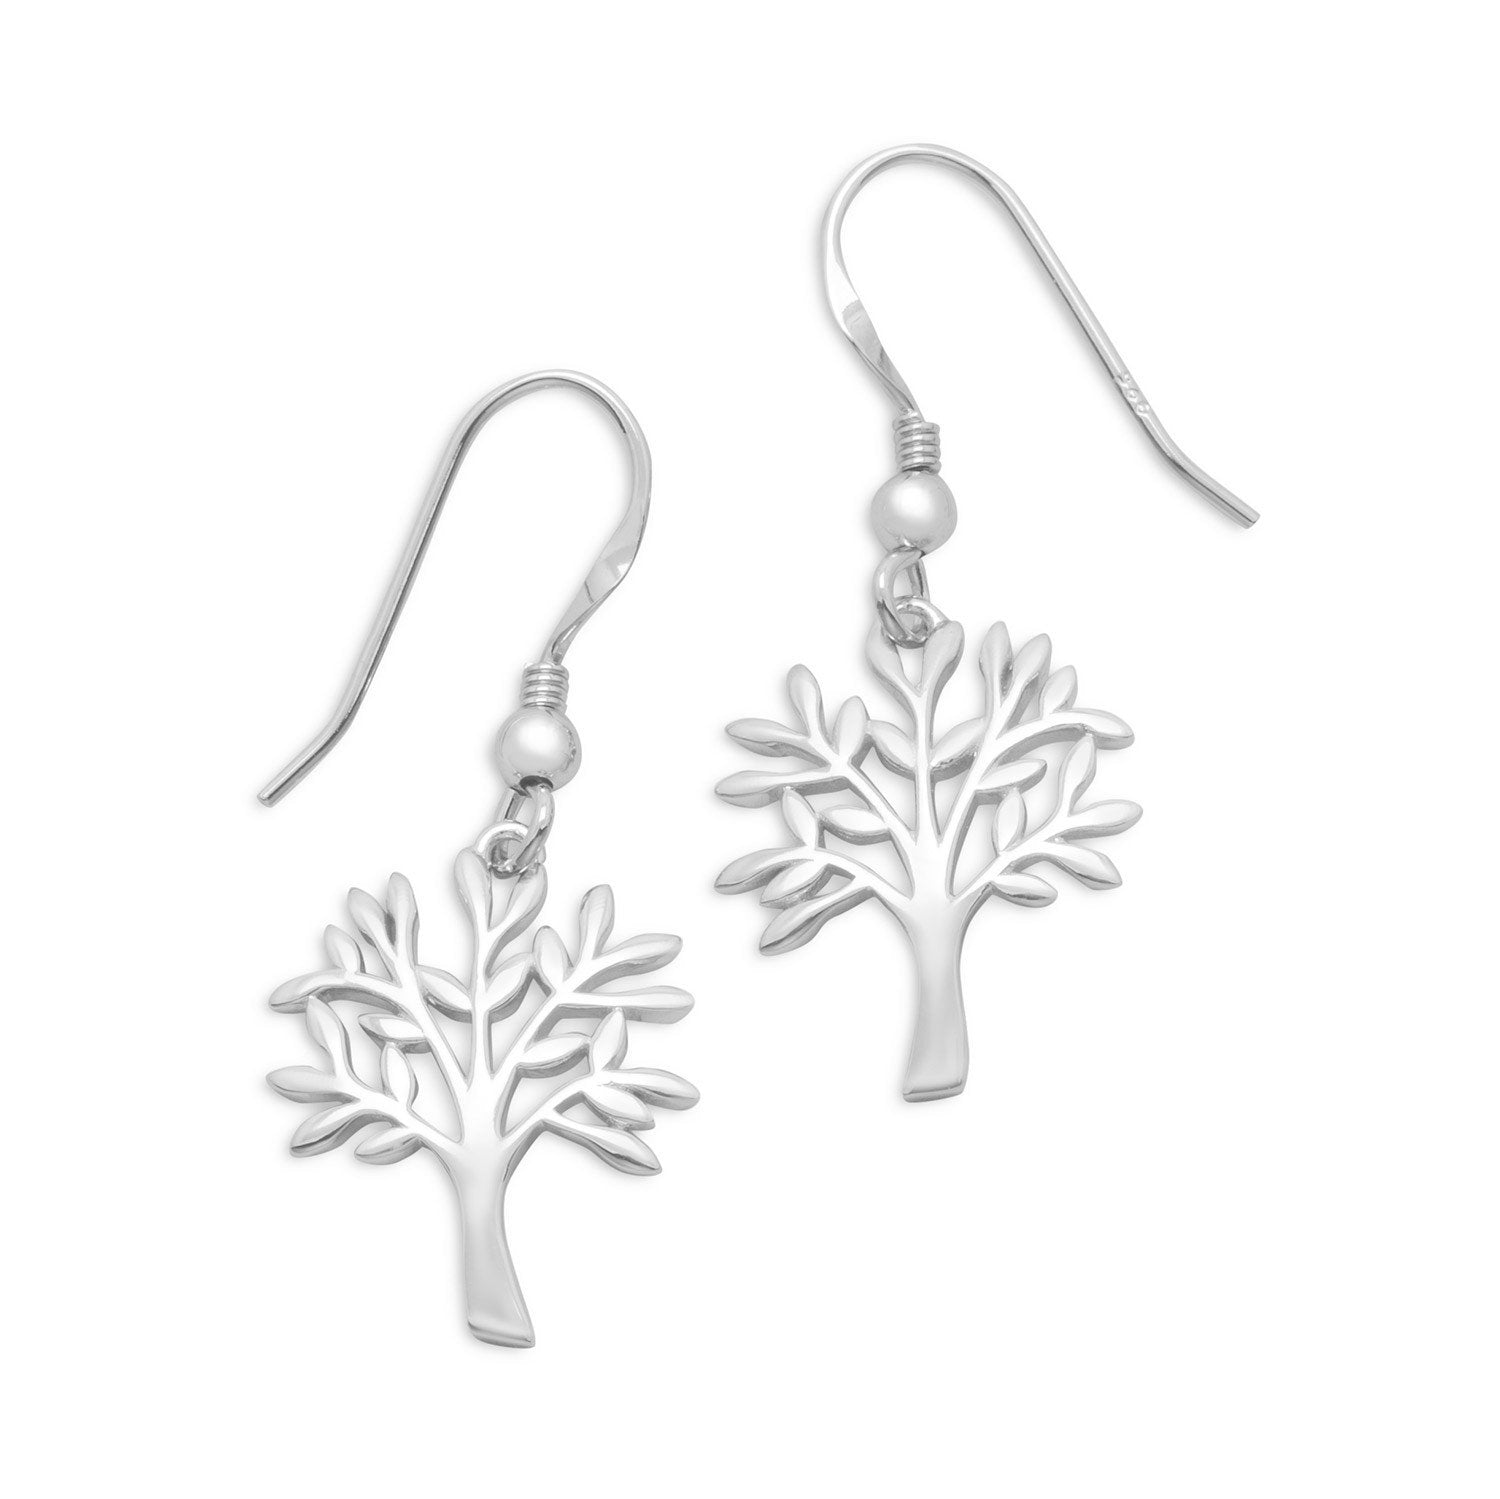 Rhodium Plated Tree Earrings - Rocky Mt. Outlet Inc - Shop & Save 24/7